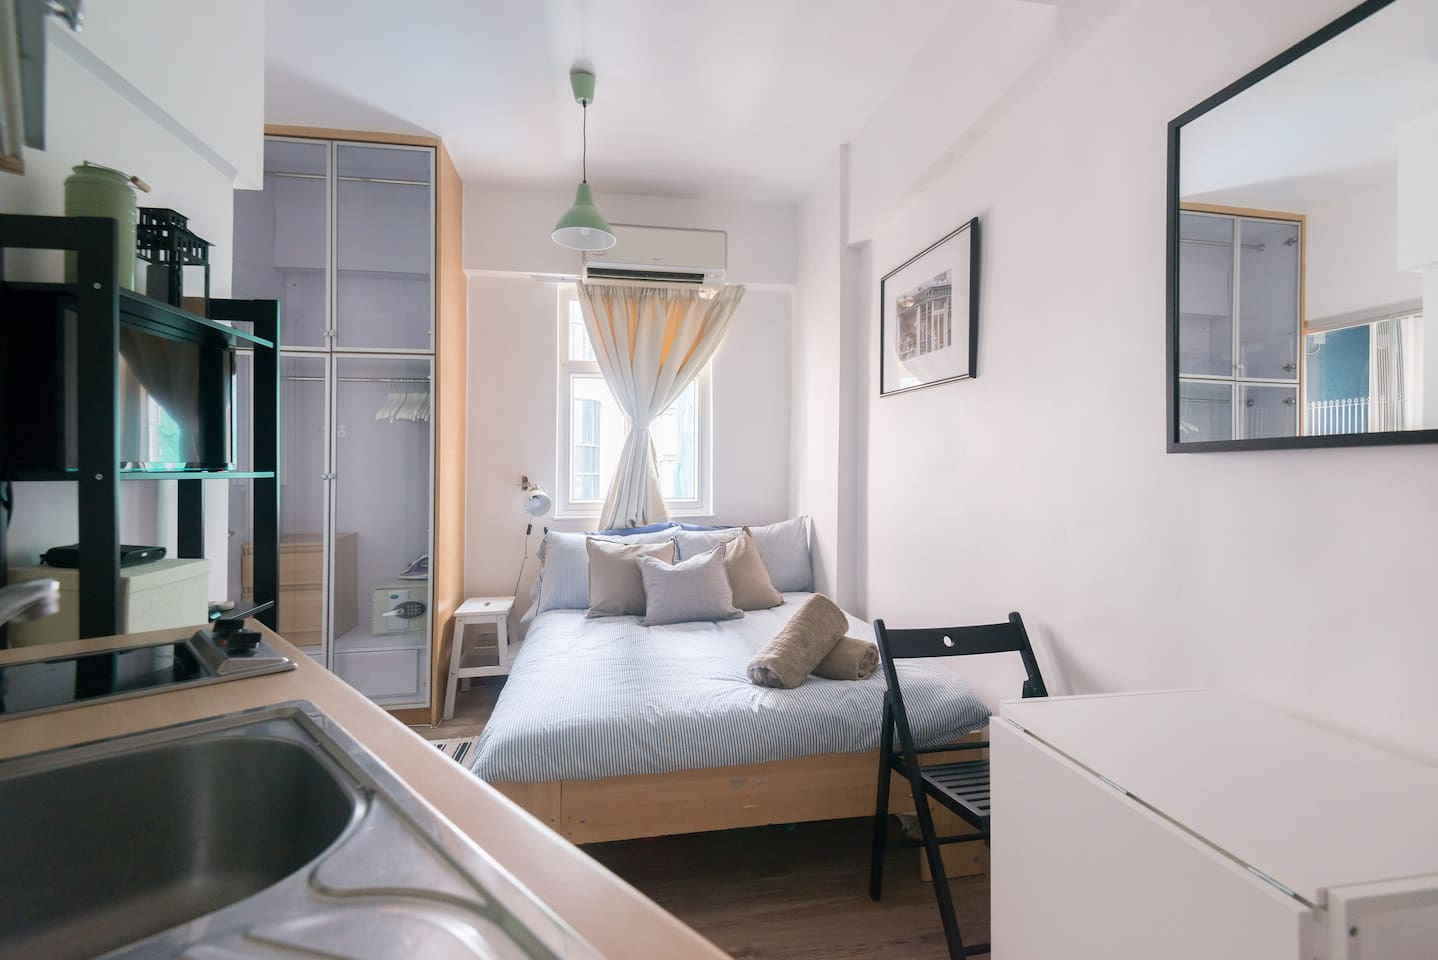 The self-contained studio has everything you need for a fantastic stay in HK, from a well equipped kitchennette and washing machine to cable TV (with HBO and Fox!) and full-speed internet.